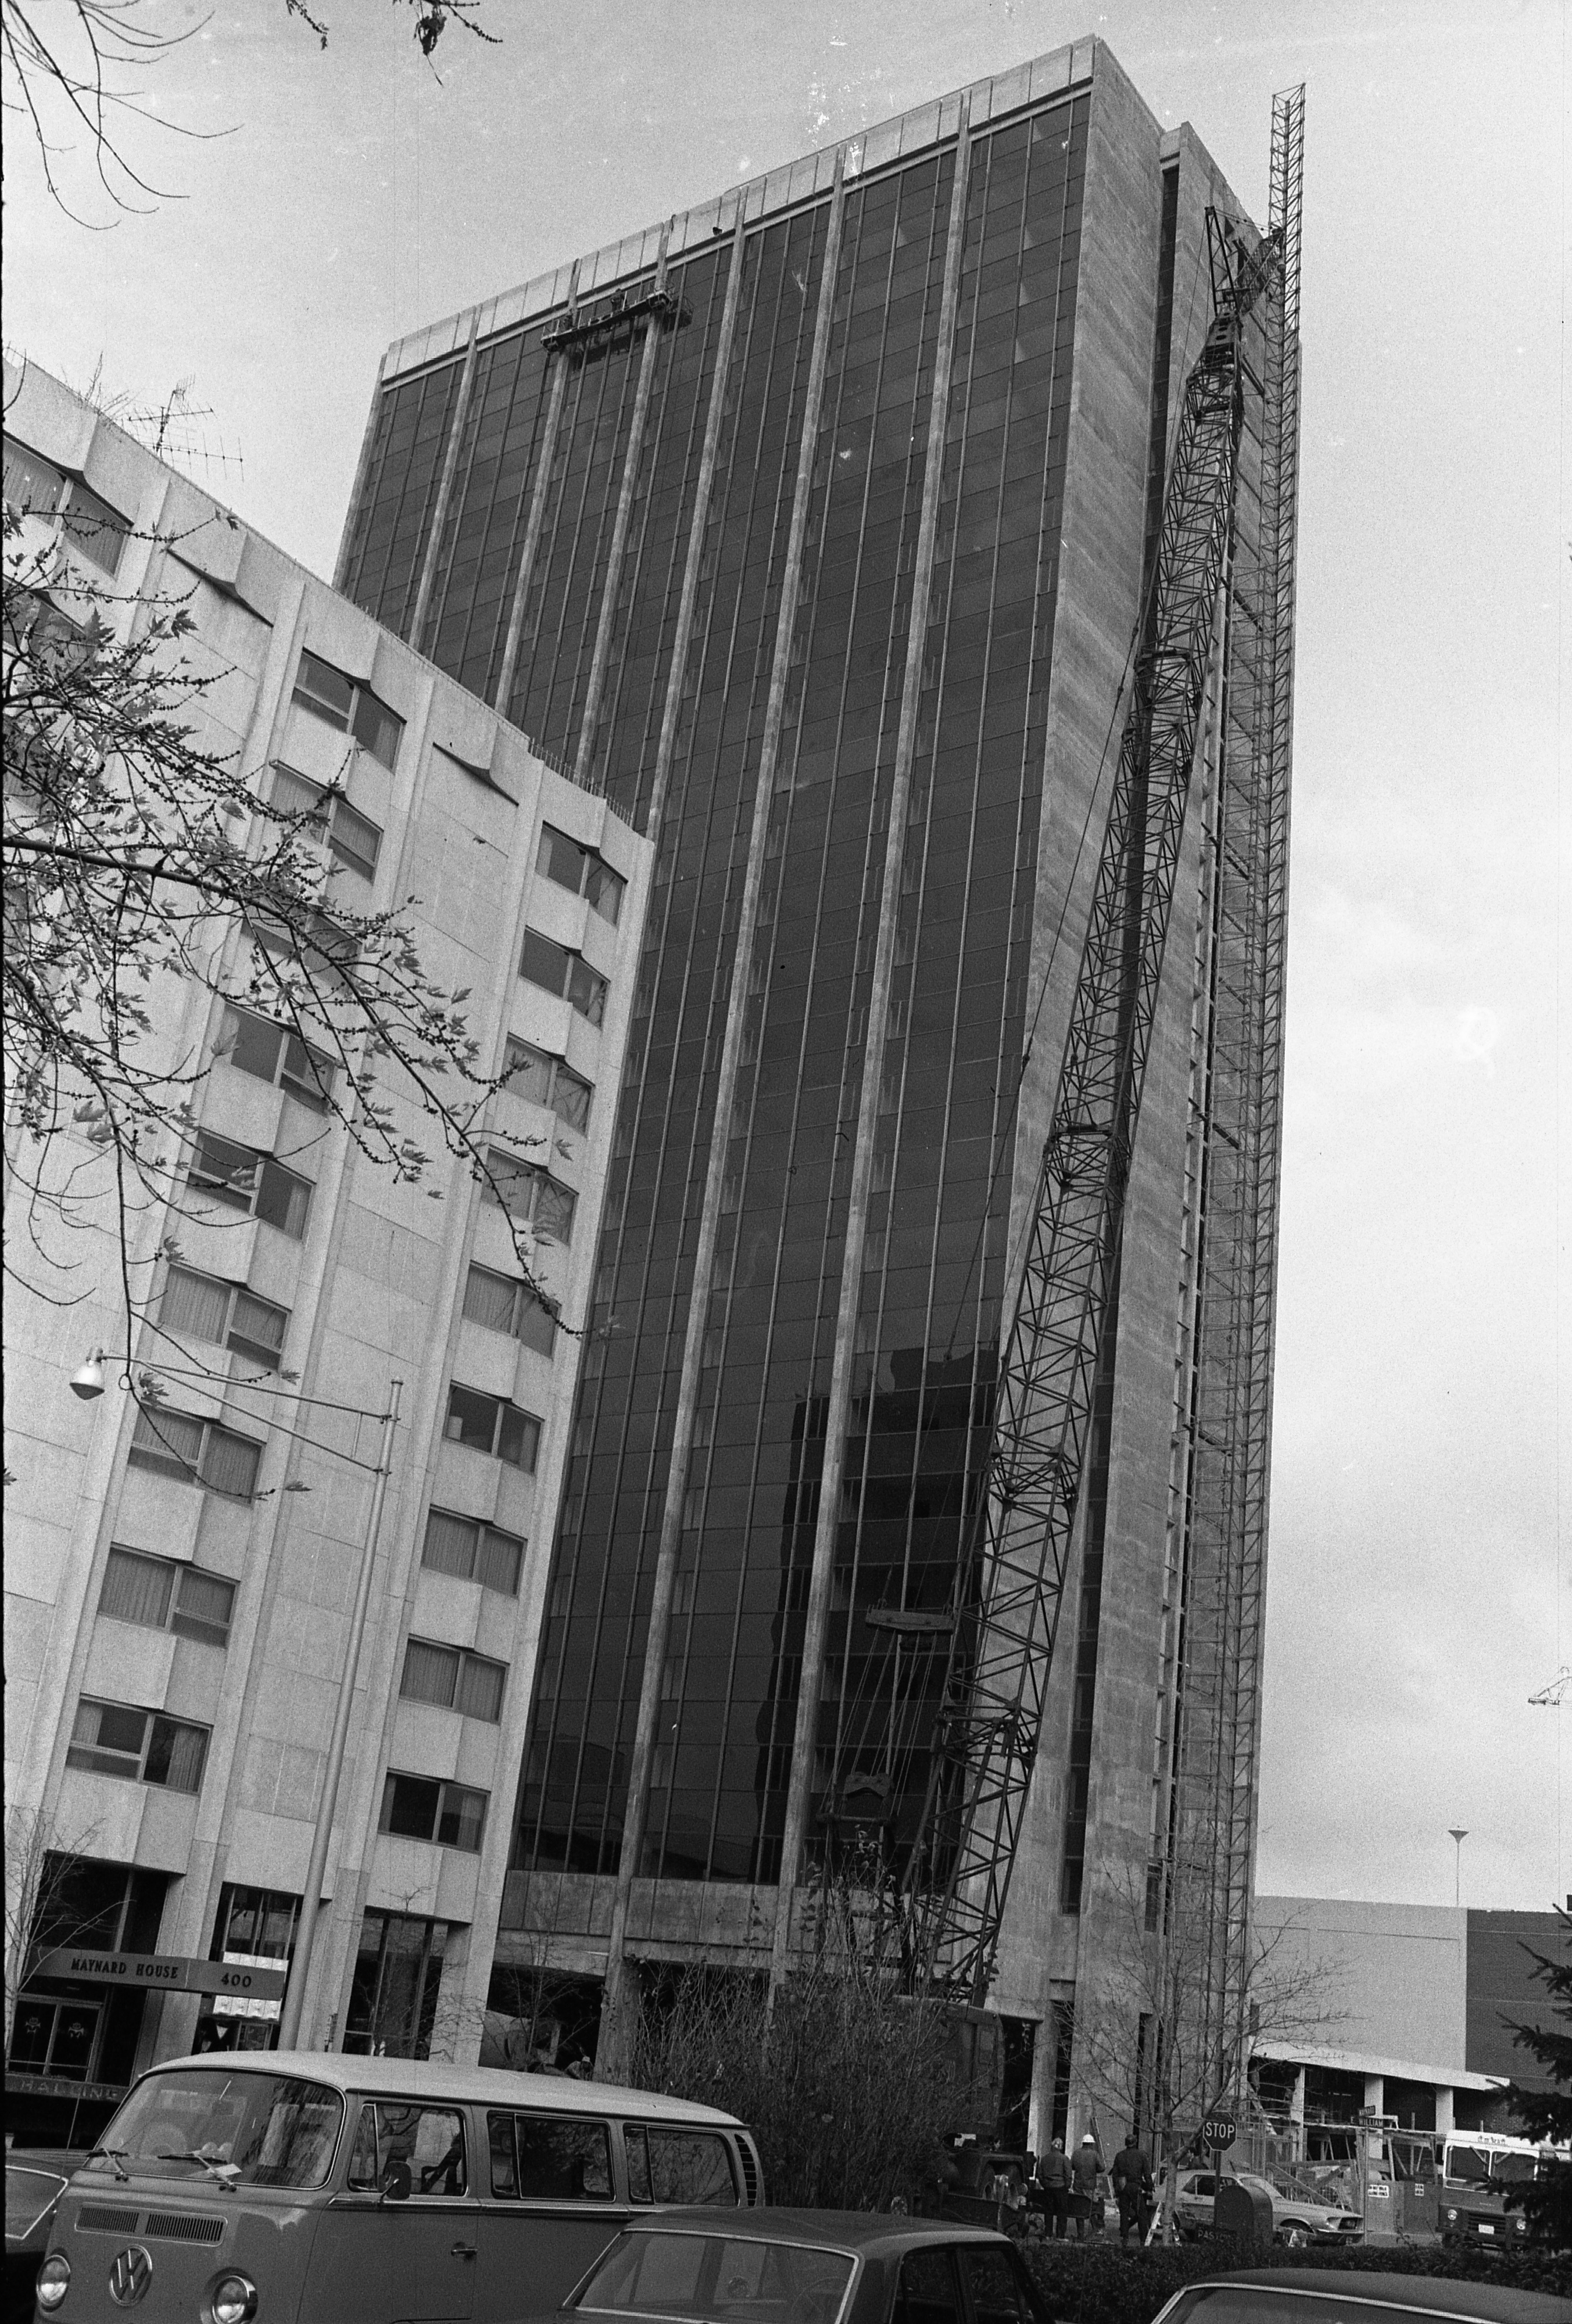 Construction Crane On Side Of Tower Plaza, November 1968 image